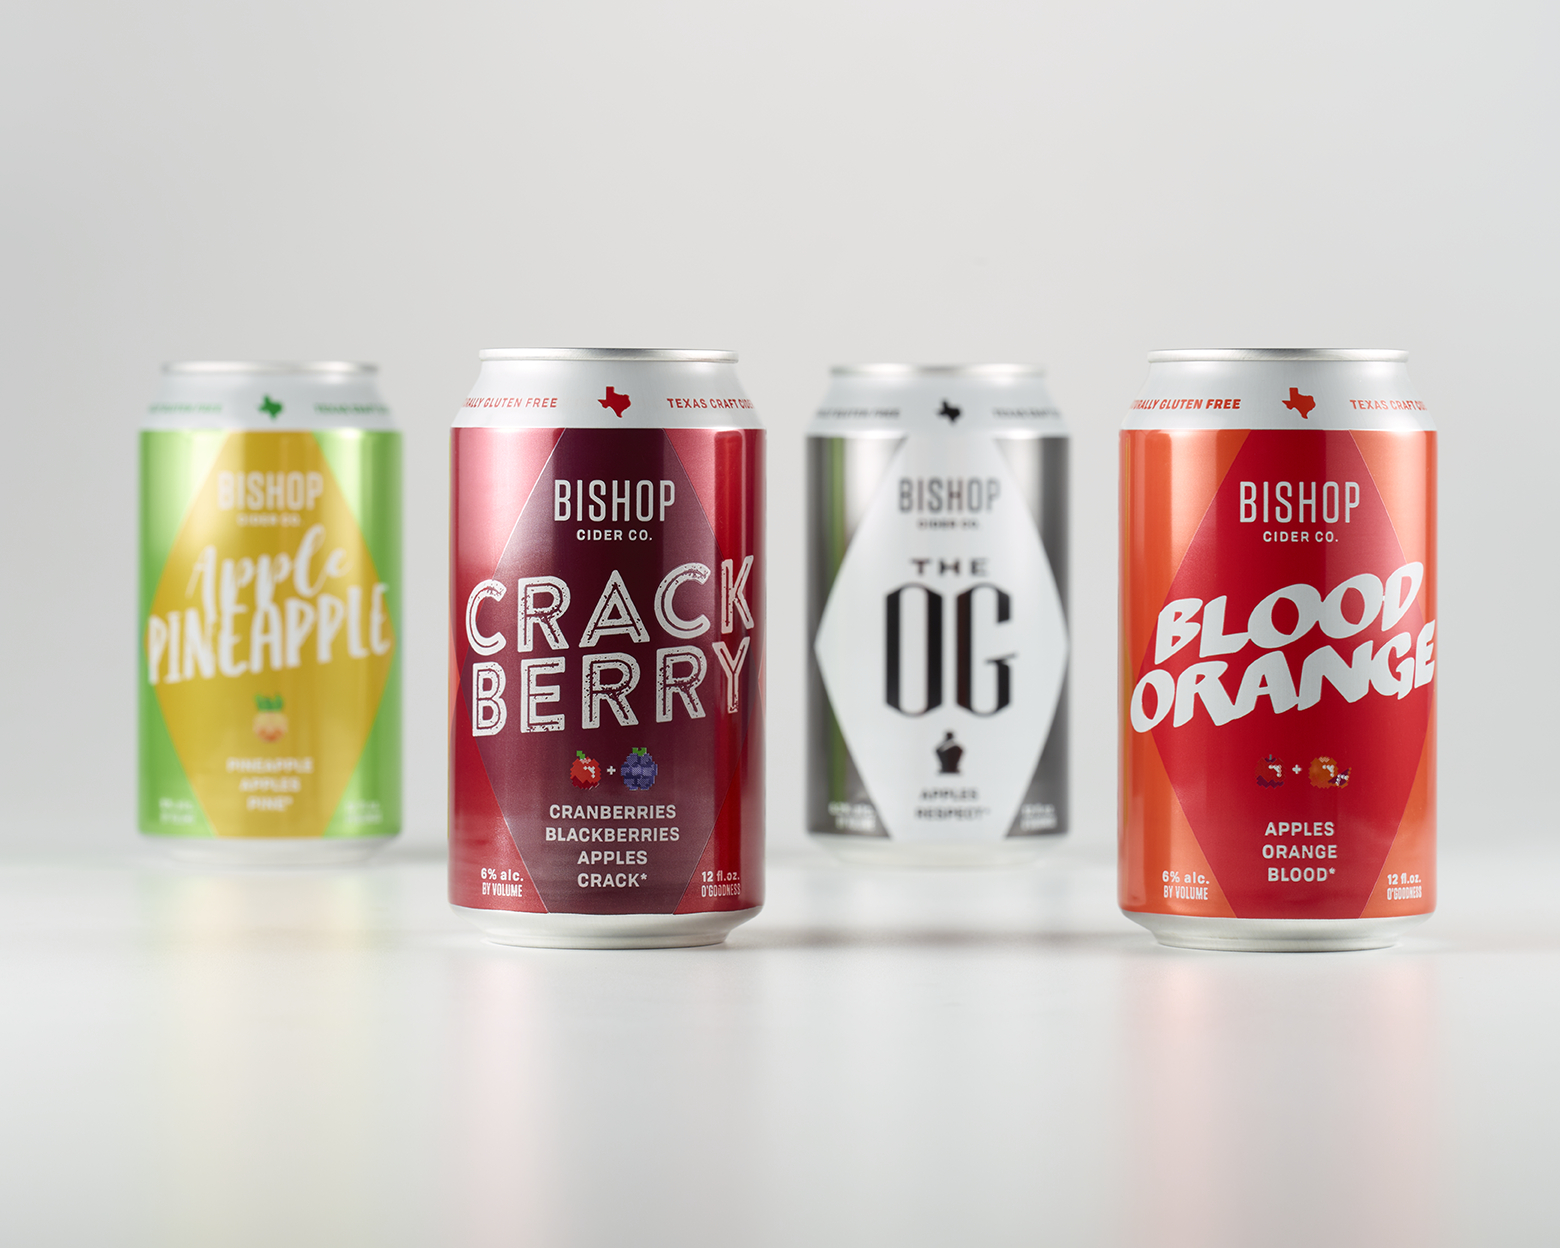 FOUR AT A TIME - We are always producing four ciders in 12oz cans. Crackberry (cranberry &blackberry) is our best-seller. Apple Pineapple is an acidic cider loaded with real pineapple. The OG is a throwback cider to Joel and Laura's home-cidermaking days. Blood Orange is mimosa-like and heavy on the citrus.